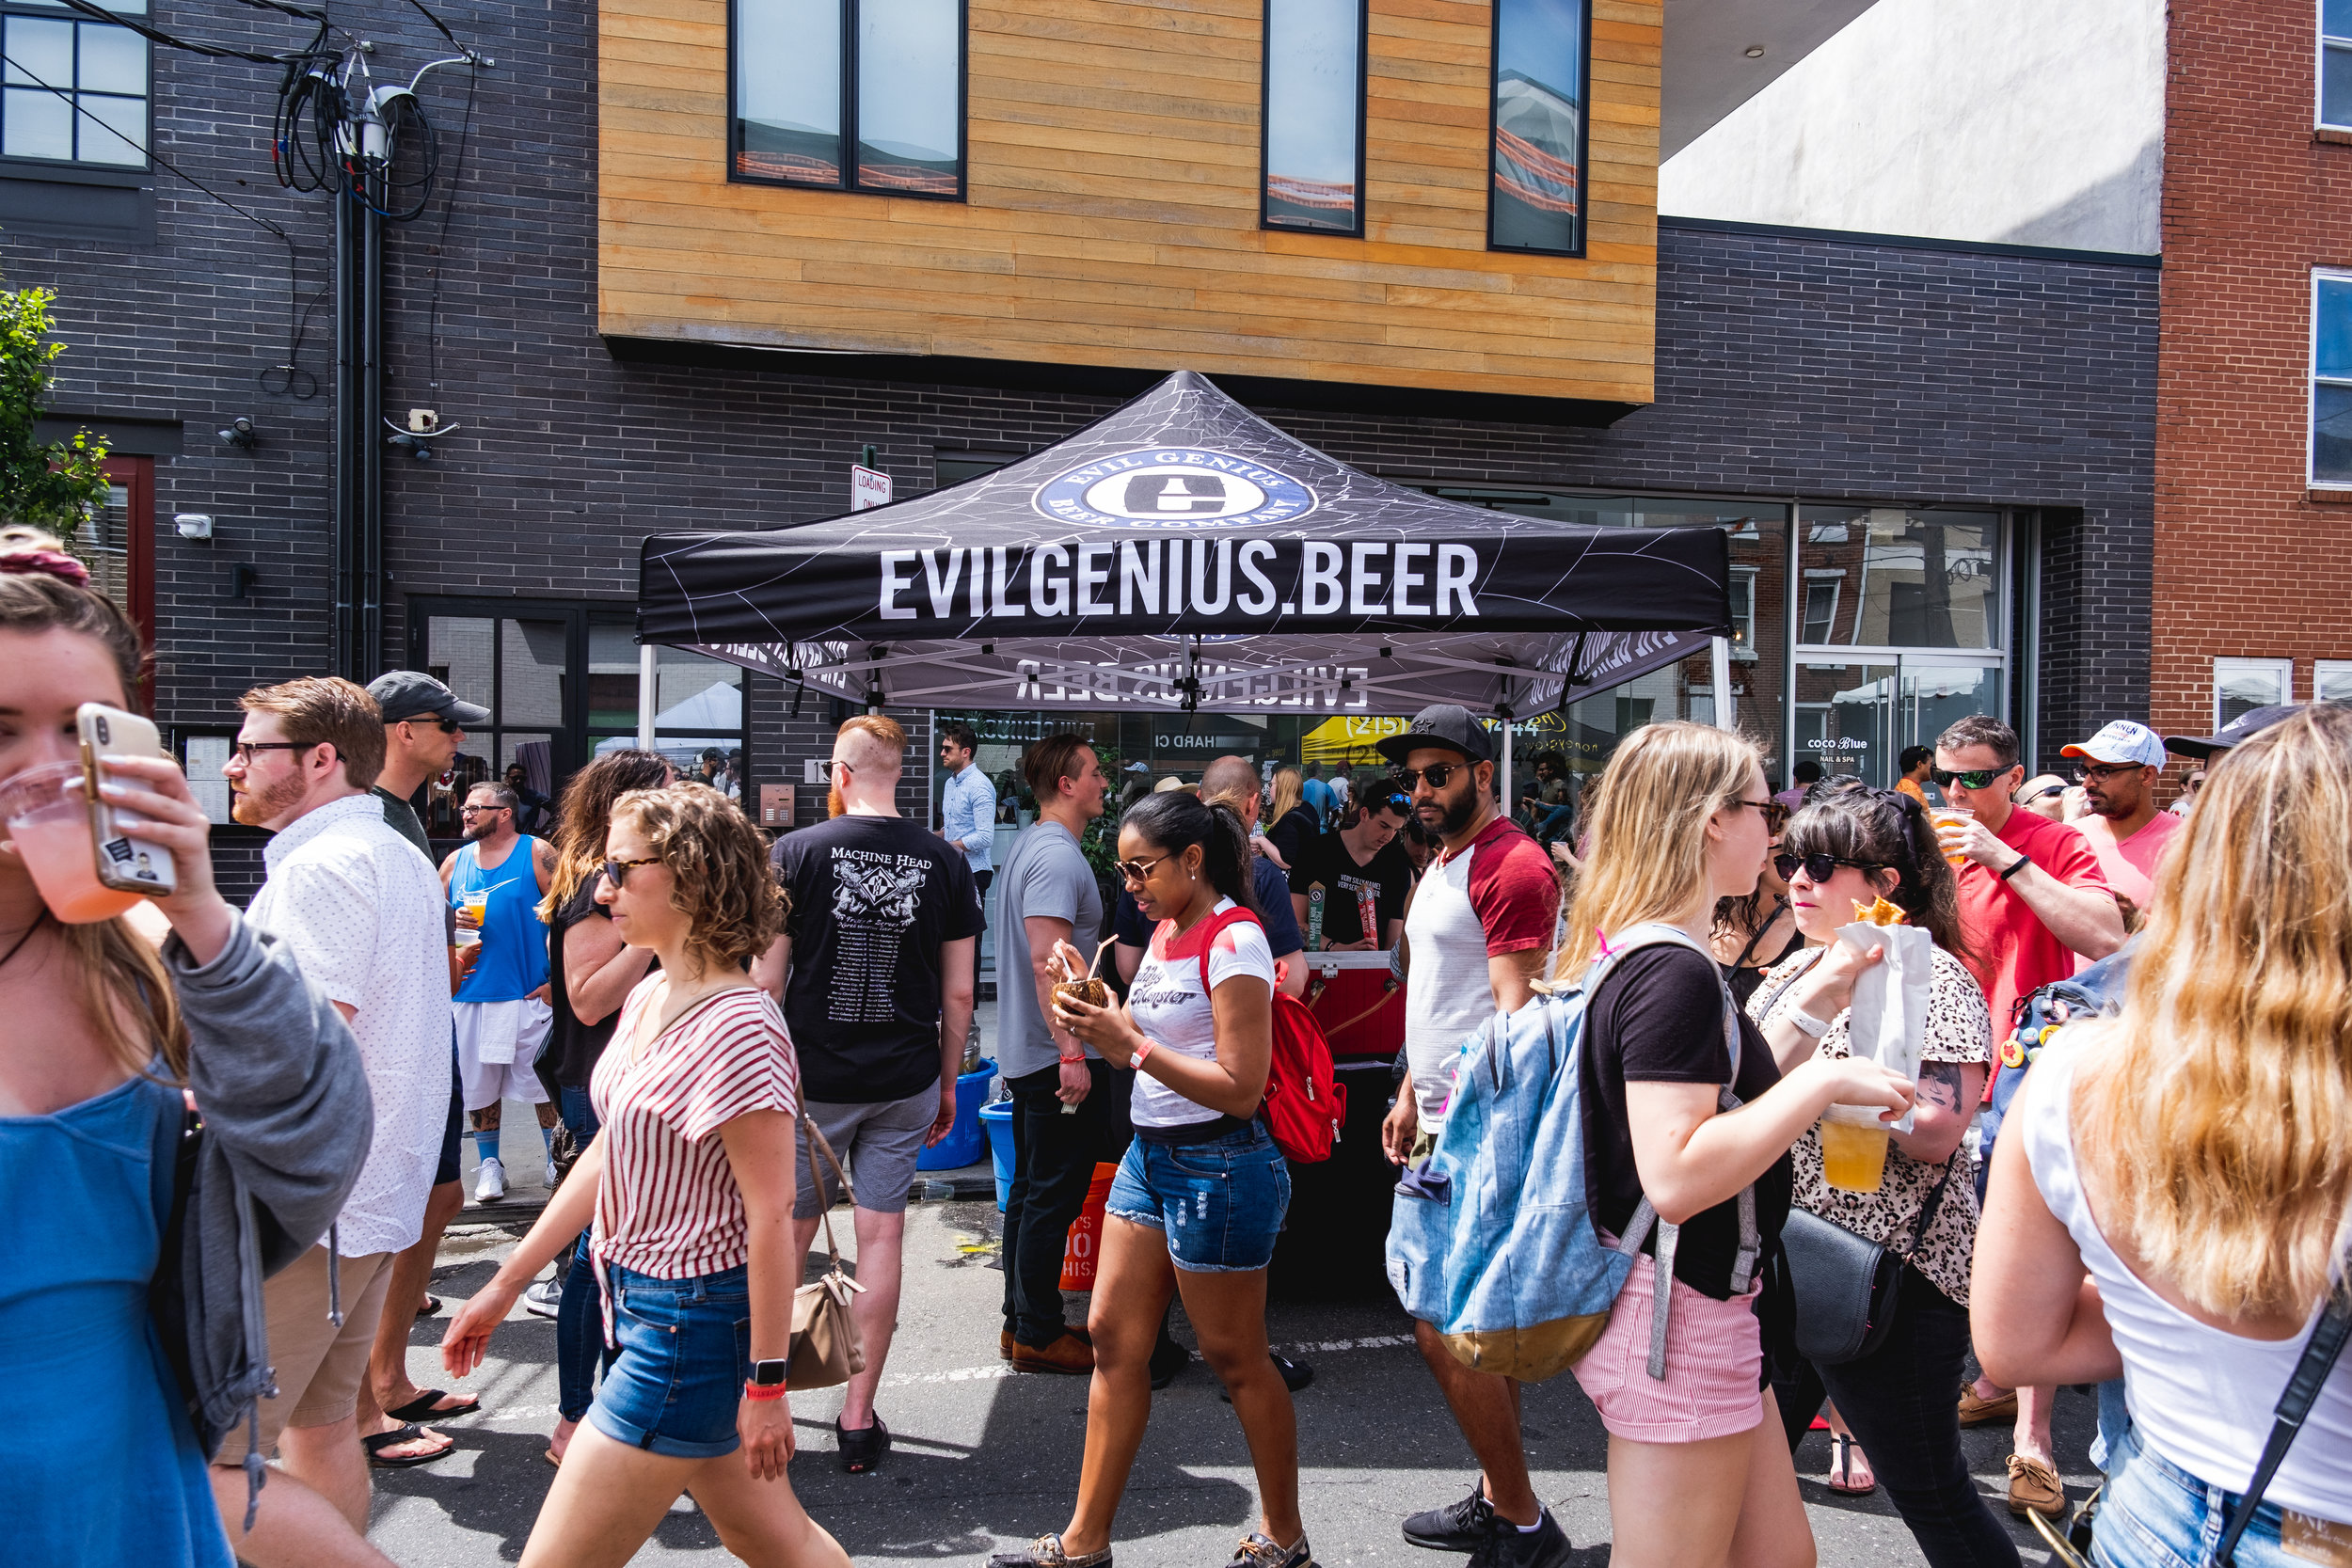 2019_PHILLY BEER WEEK_FISHTOWN FESTIVALE_EVENTS_THE PHILLY CHECKLIST-9.jpg